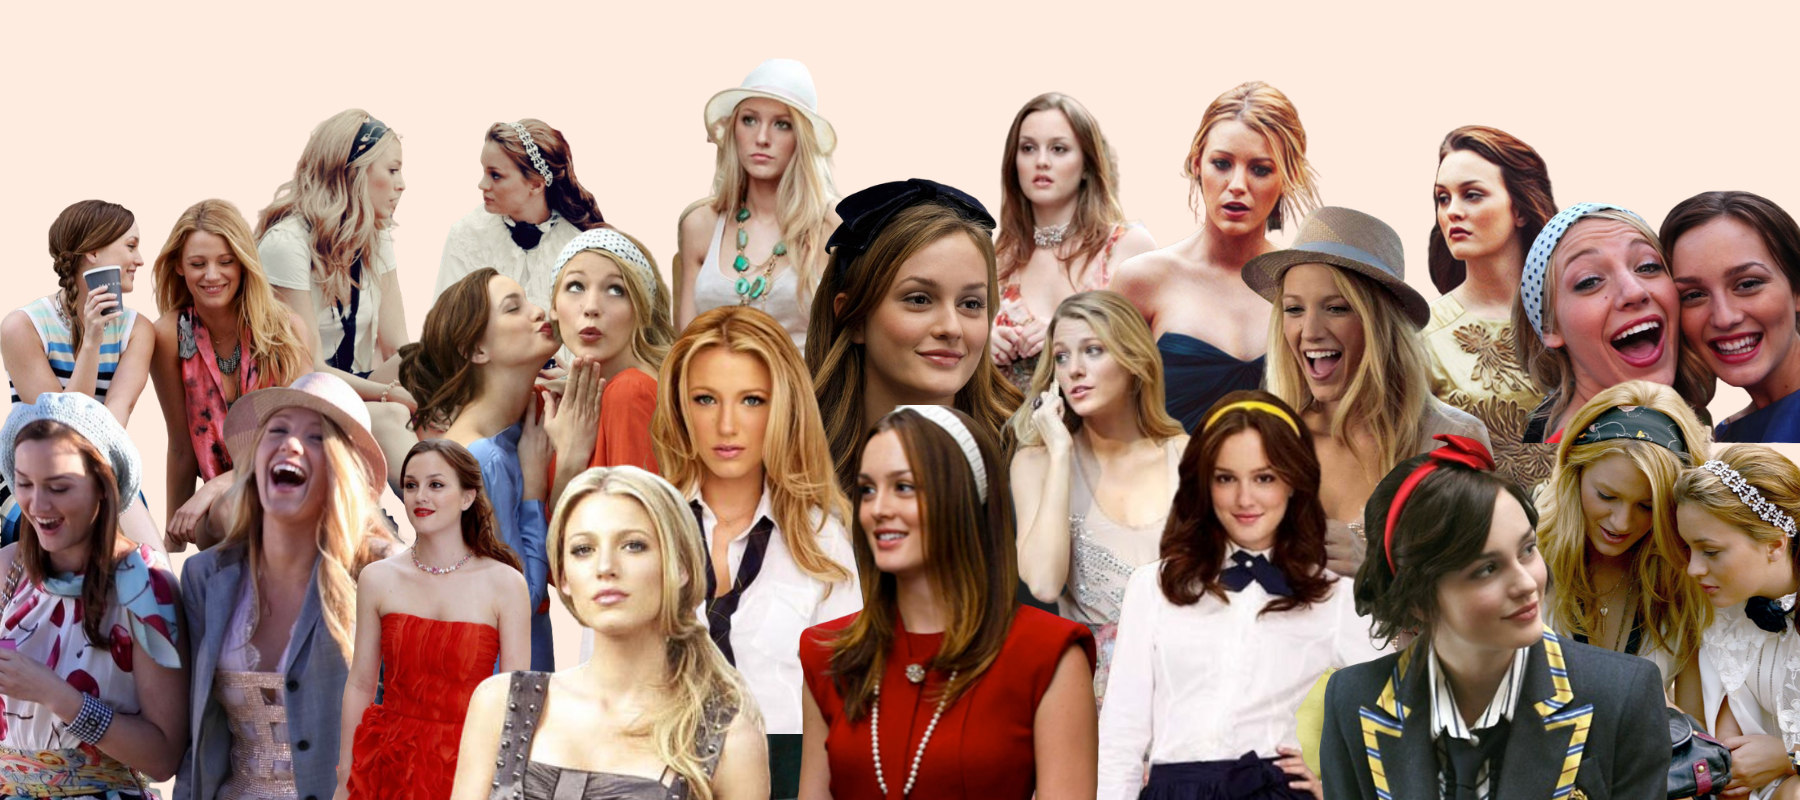 Your Color Mask Based On Your Fav Gossip Girl Character